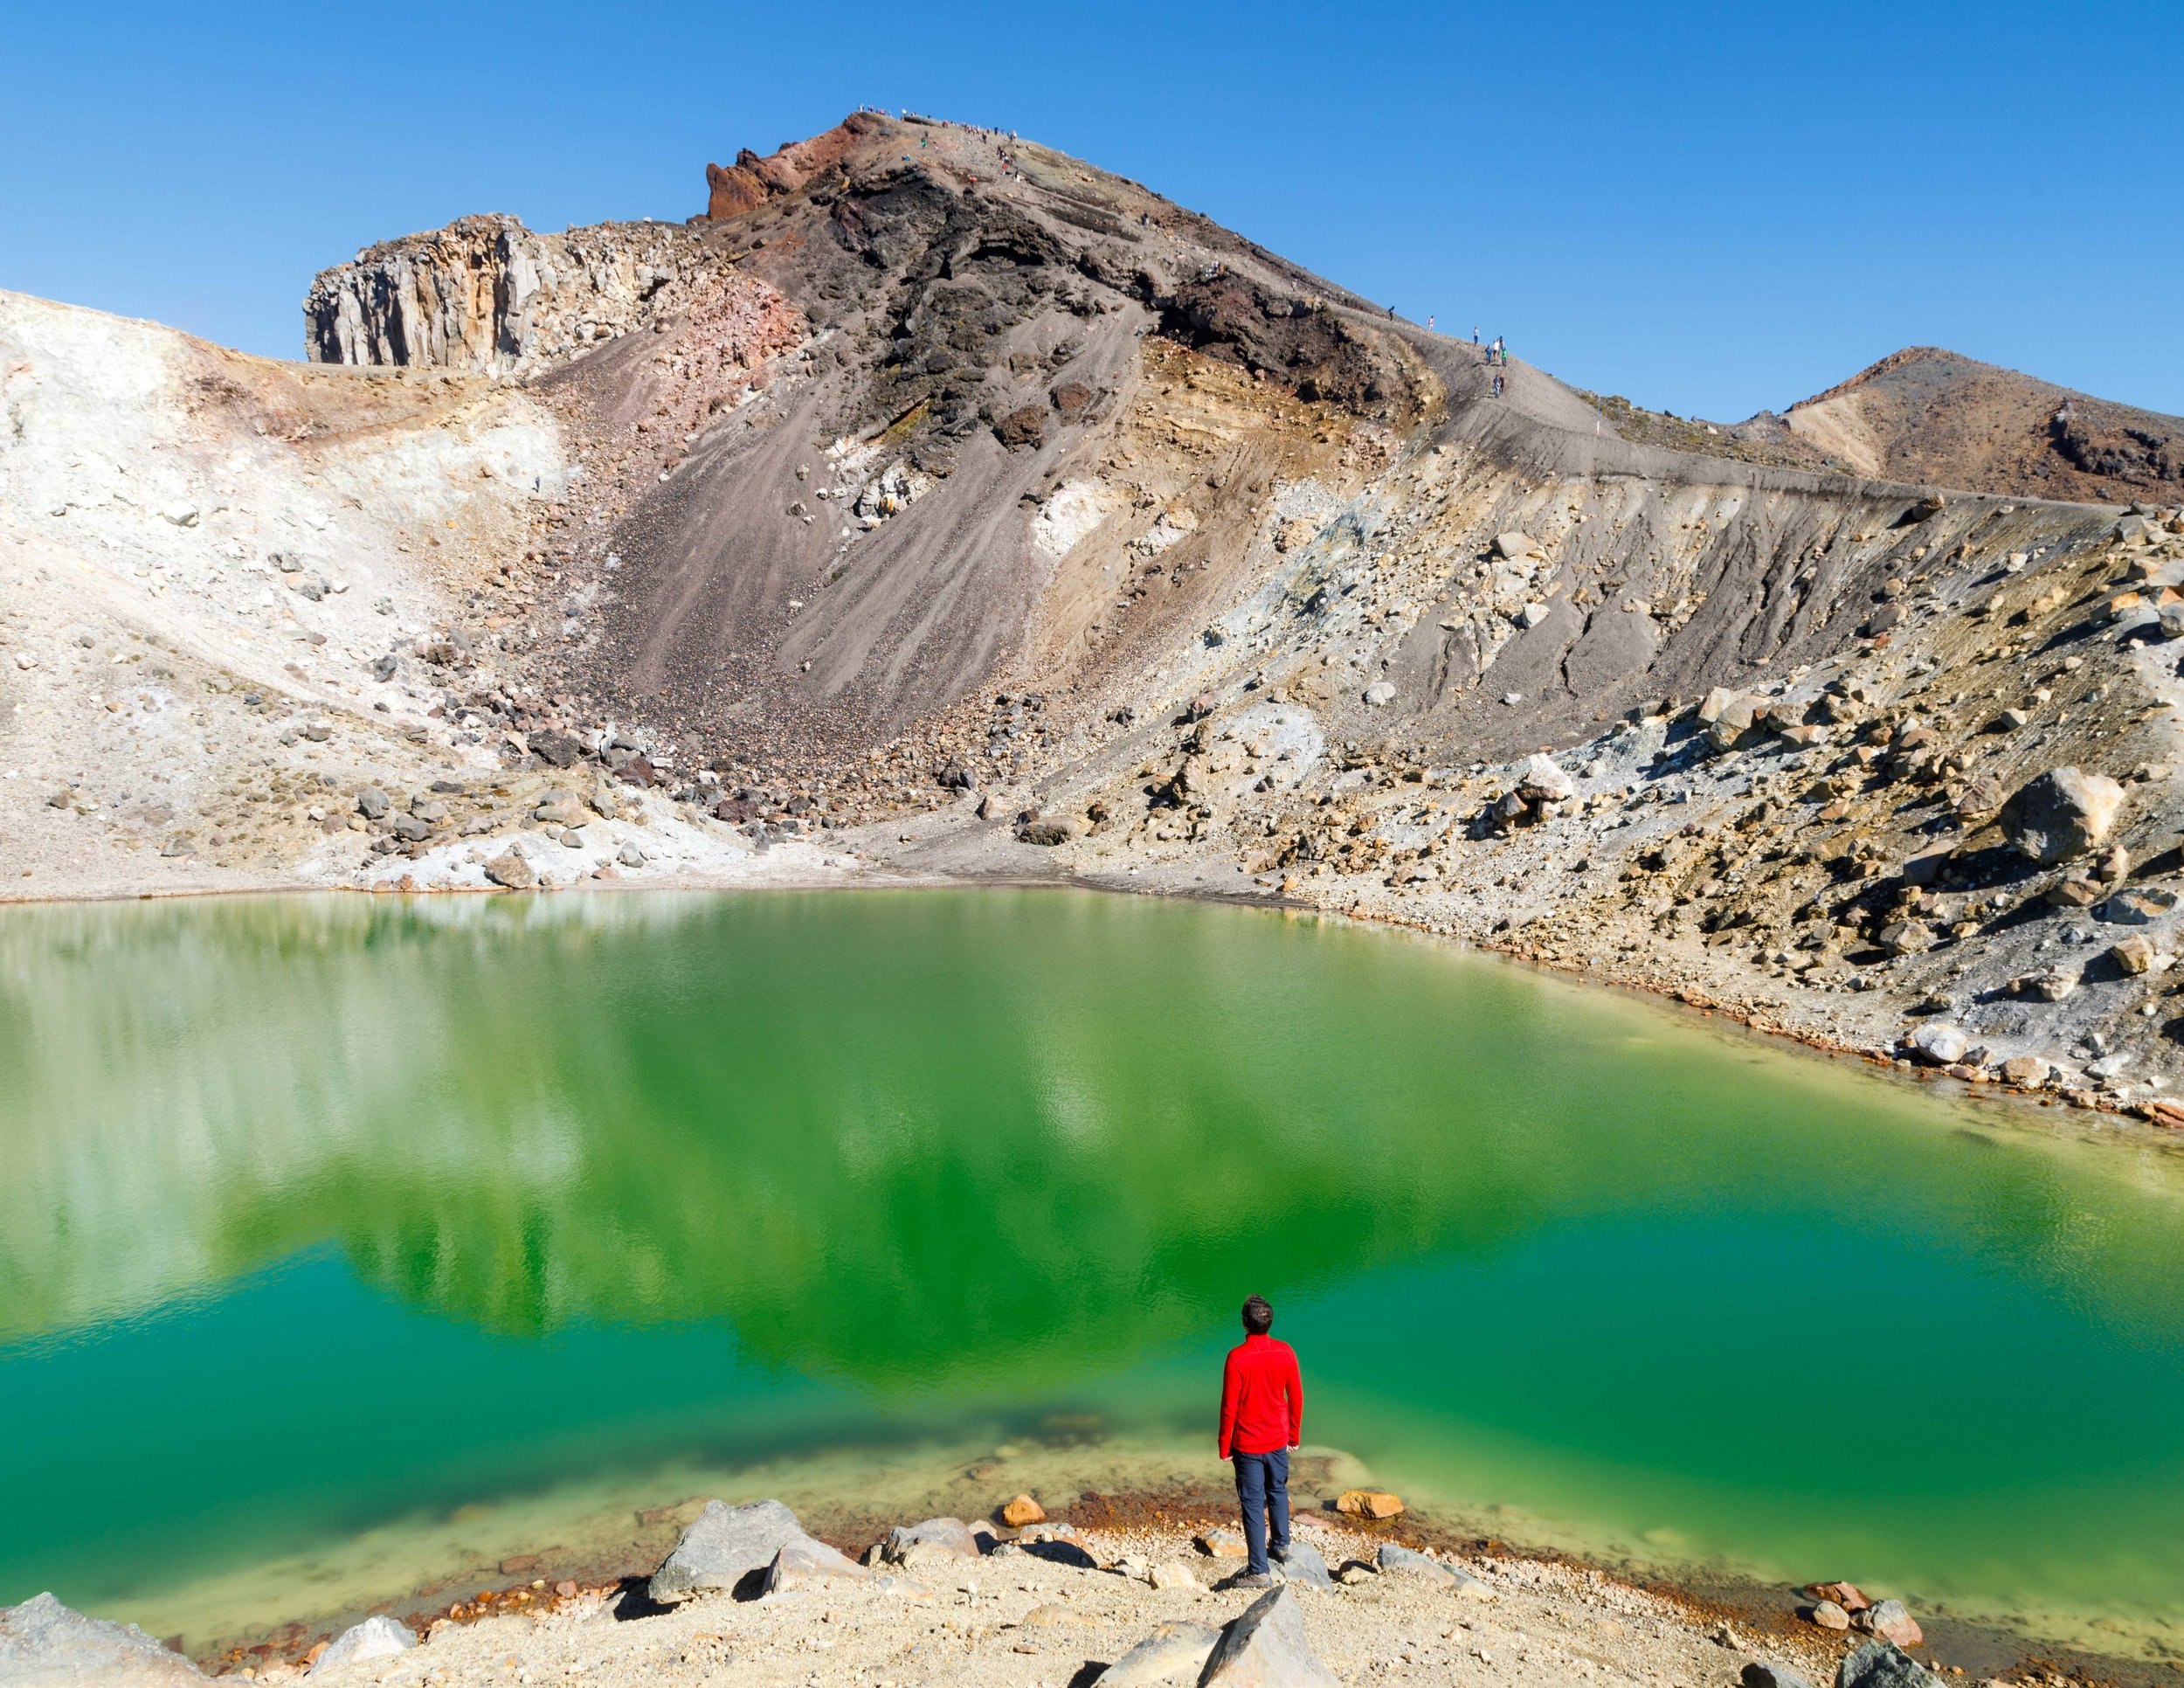 One of the Emerald Lakes on near Red Crater